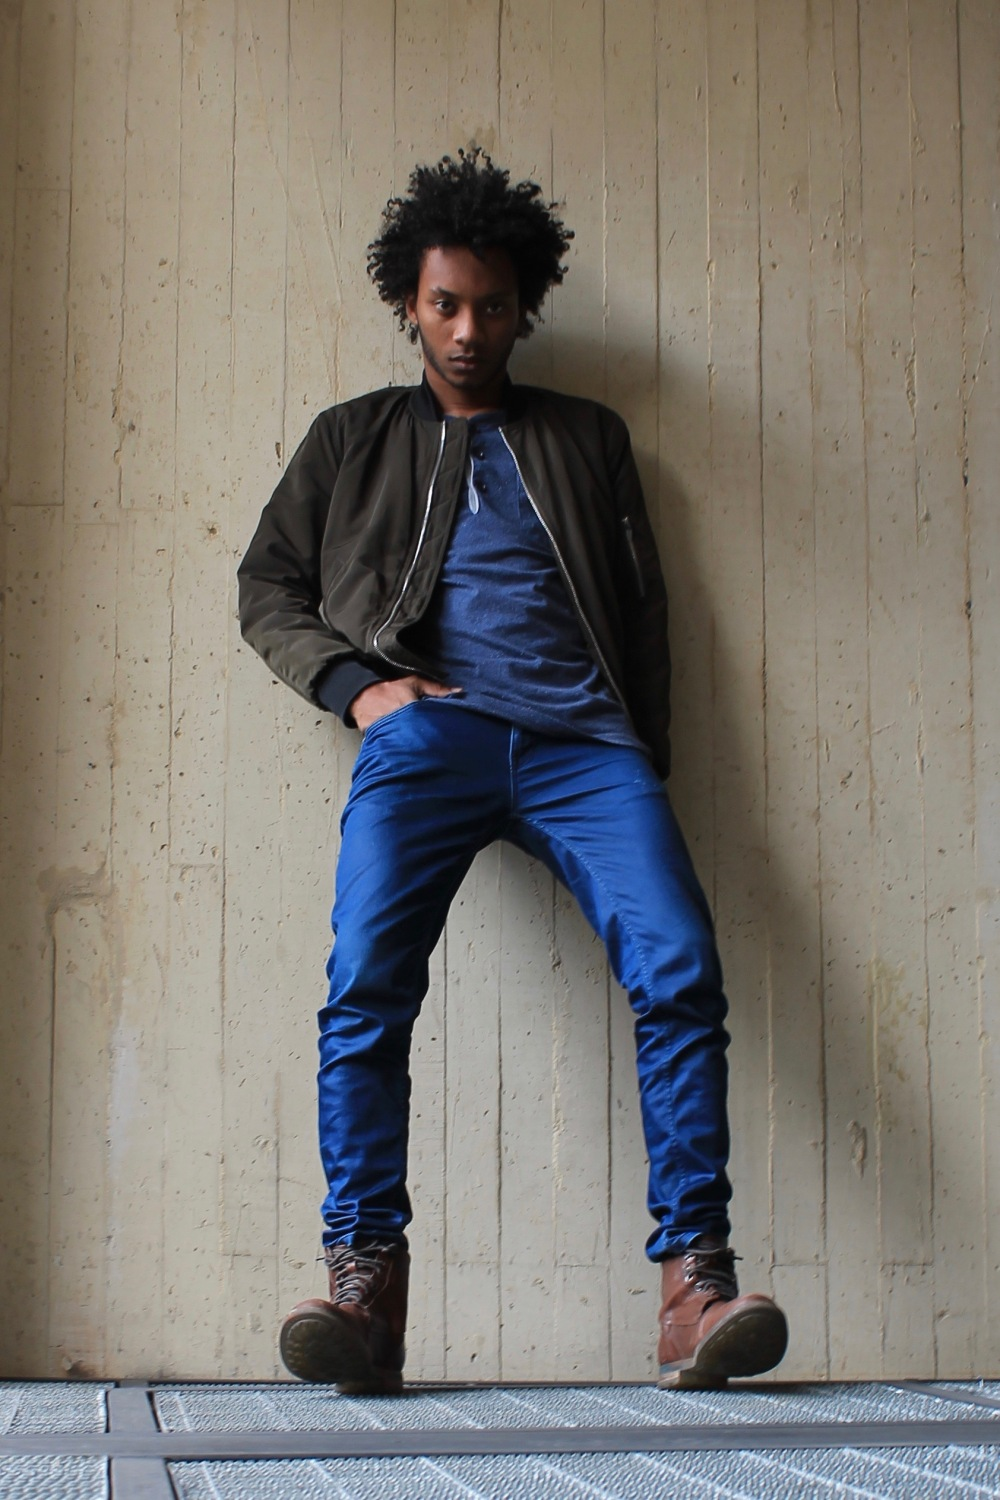 juan afro hair blue pants